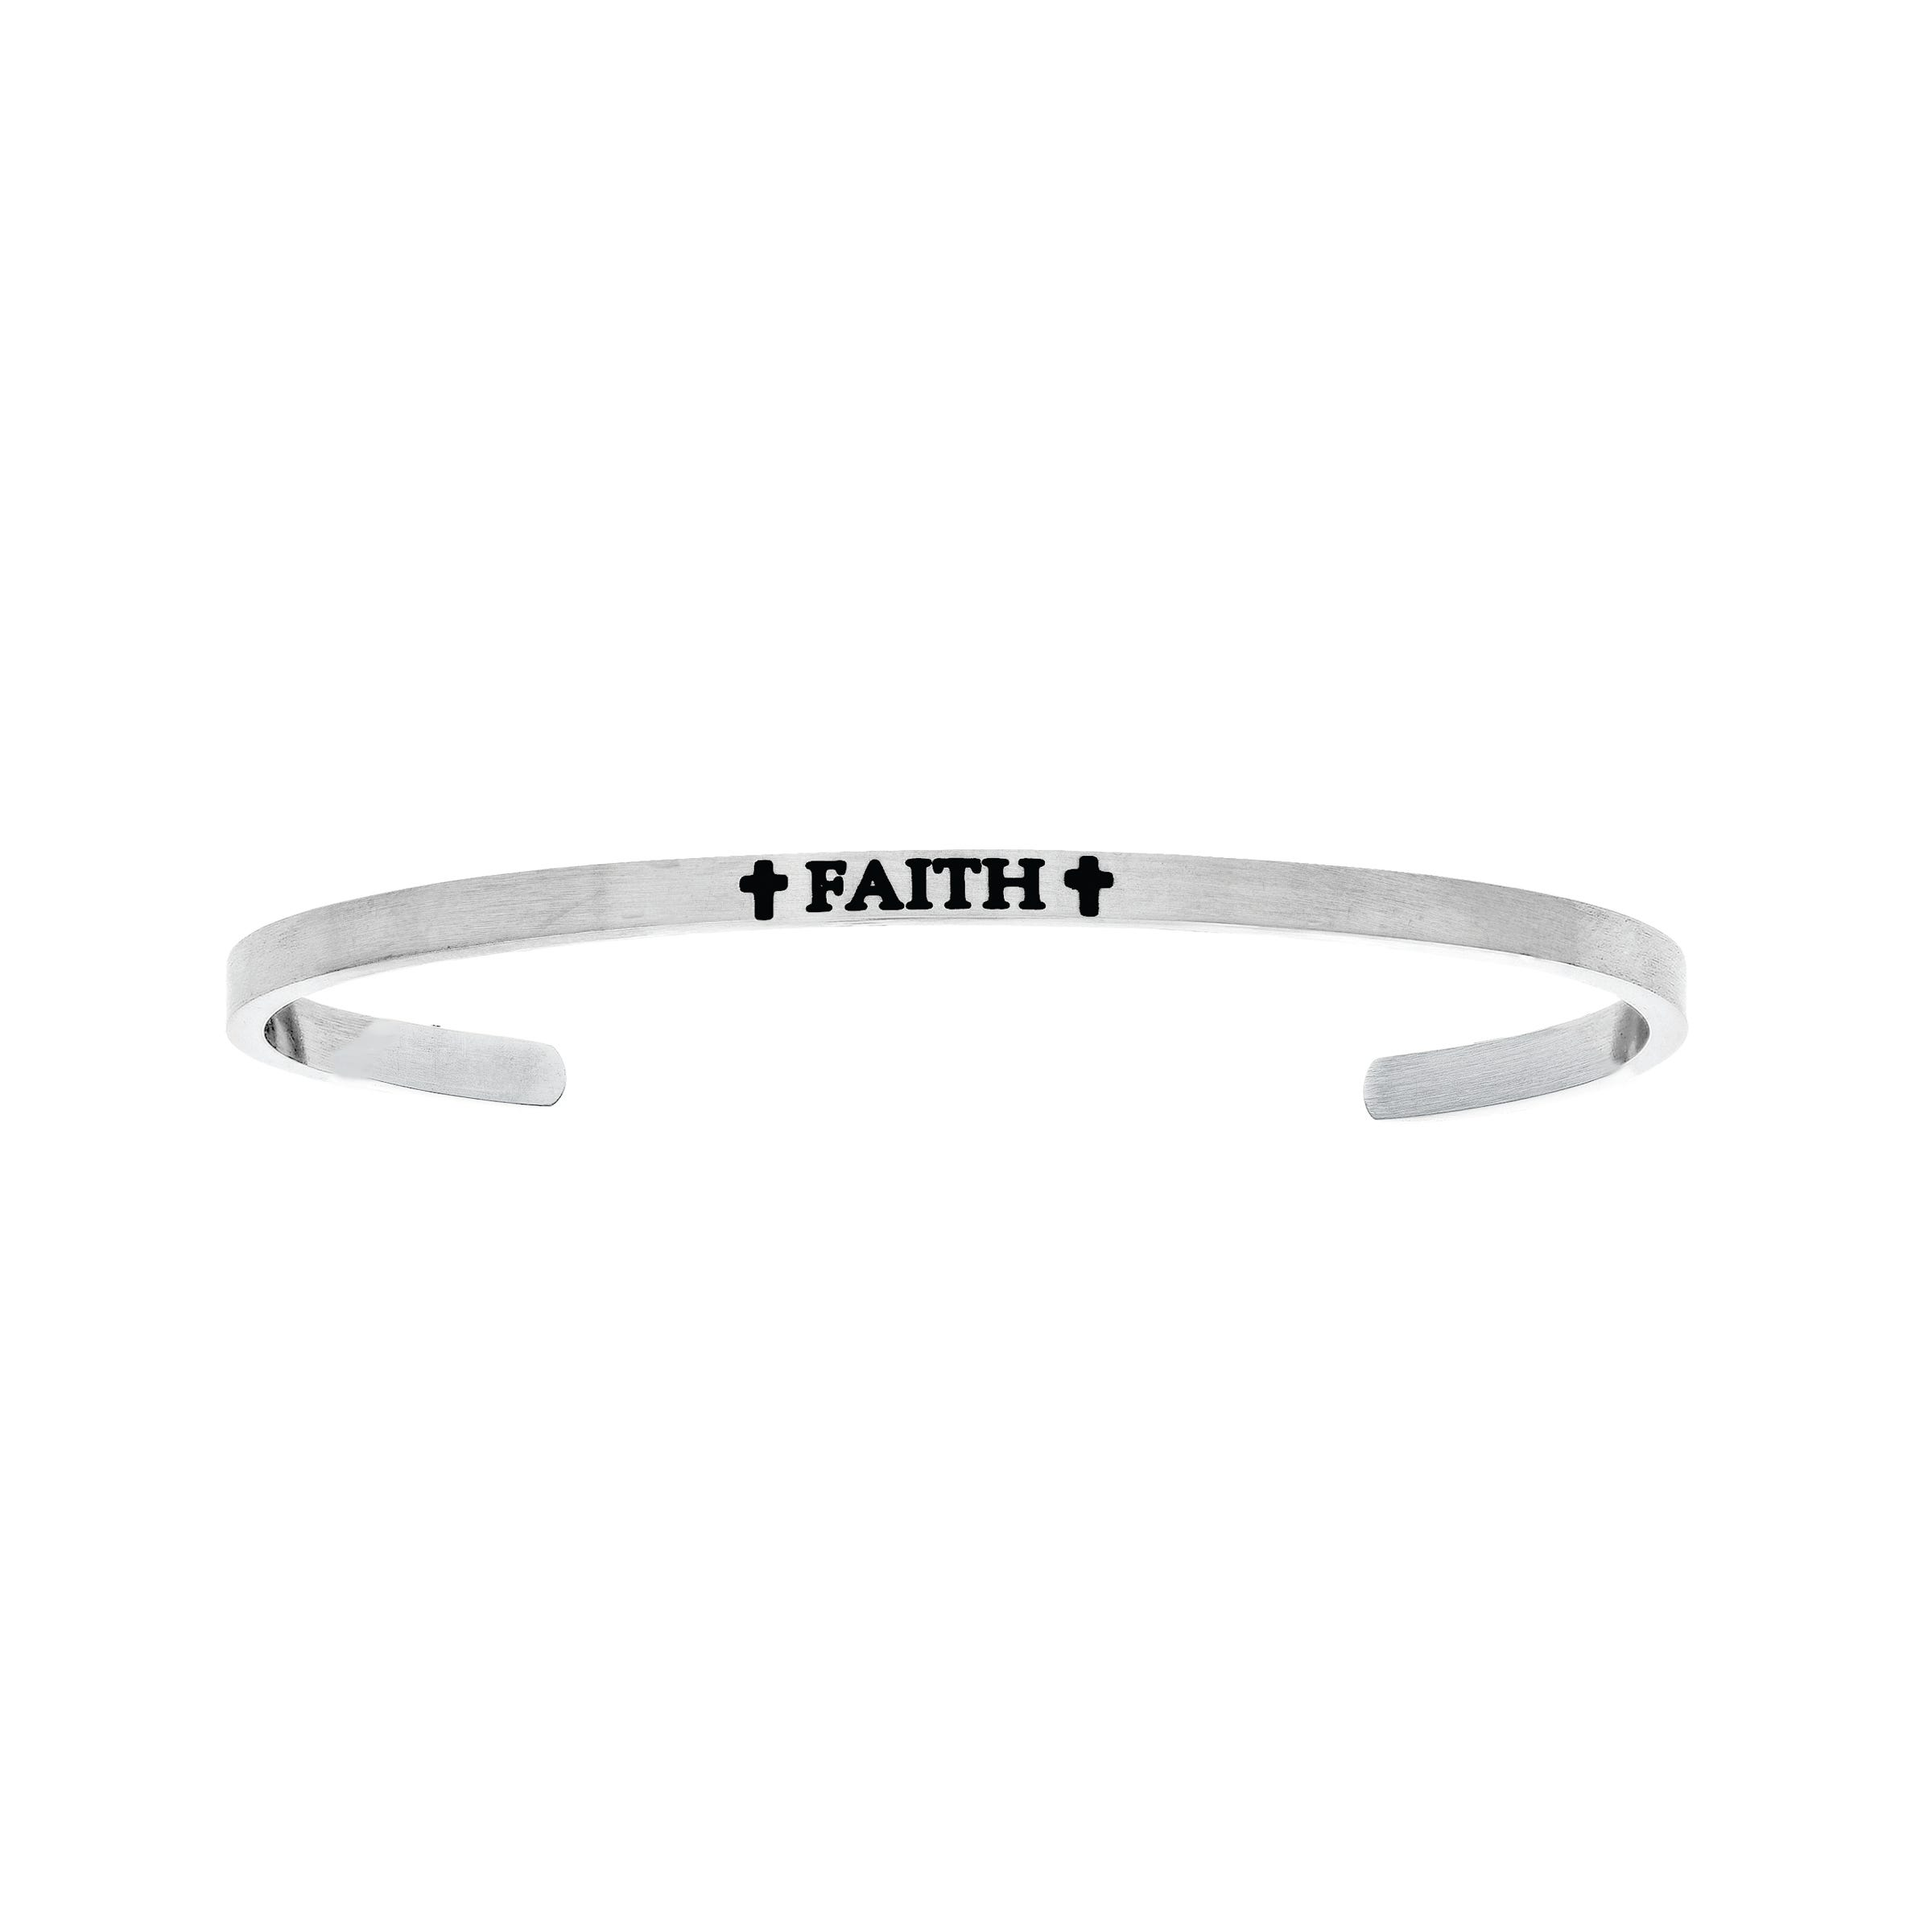 Faith. Intuitions Cuff Bracelet in White Stainless Steel